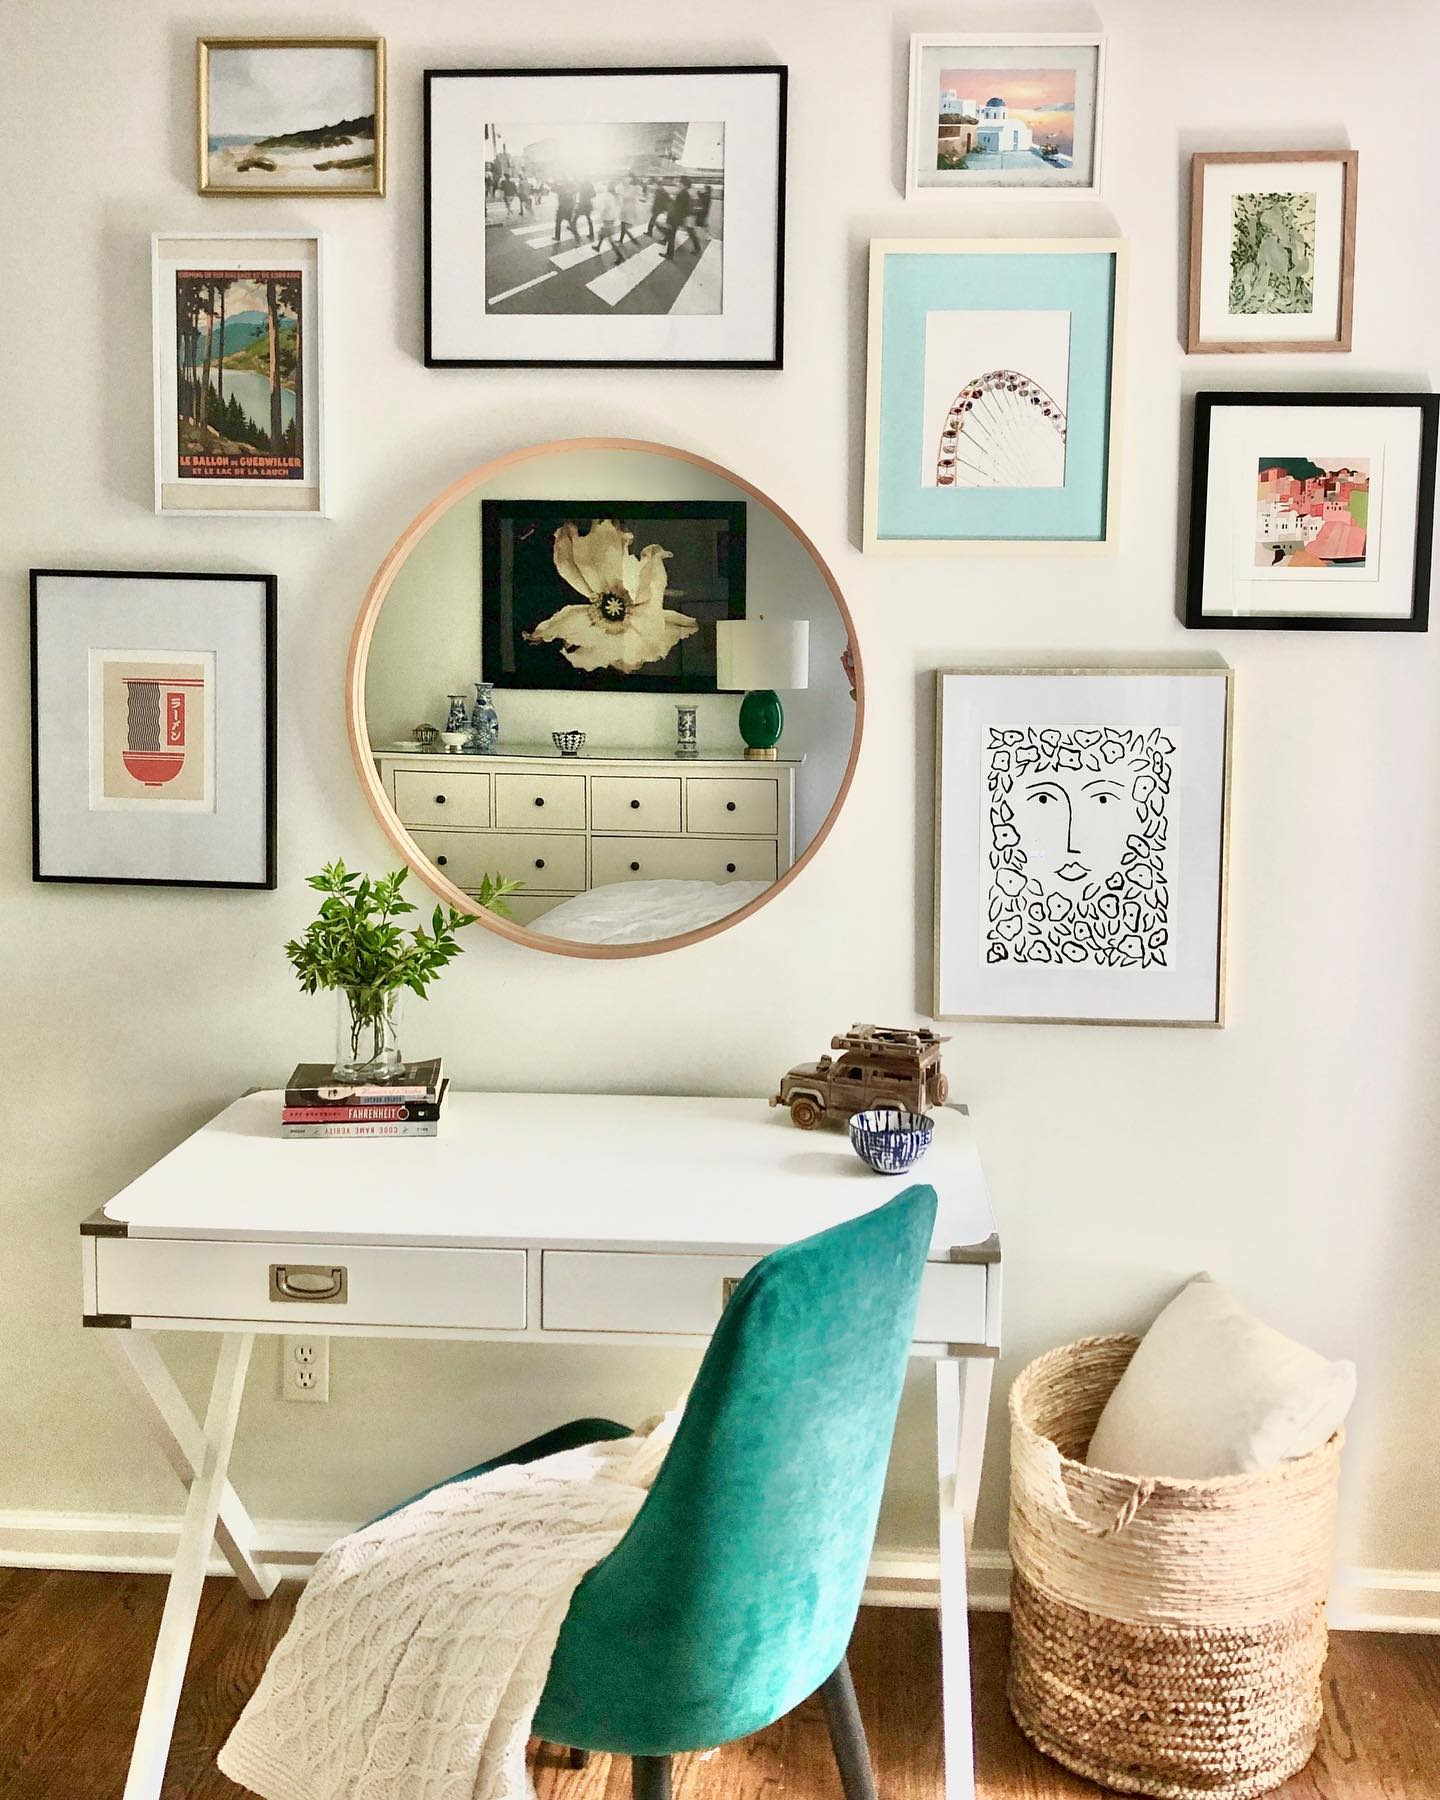 Frame Wall Collage Ideas -fridayandcodesign